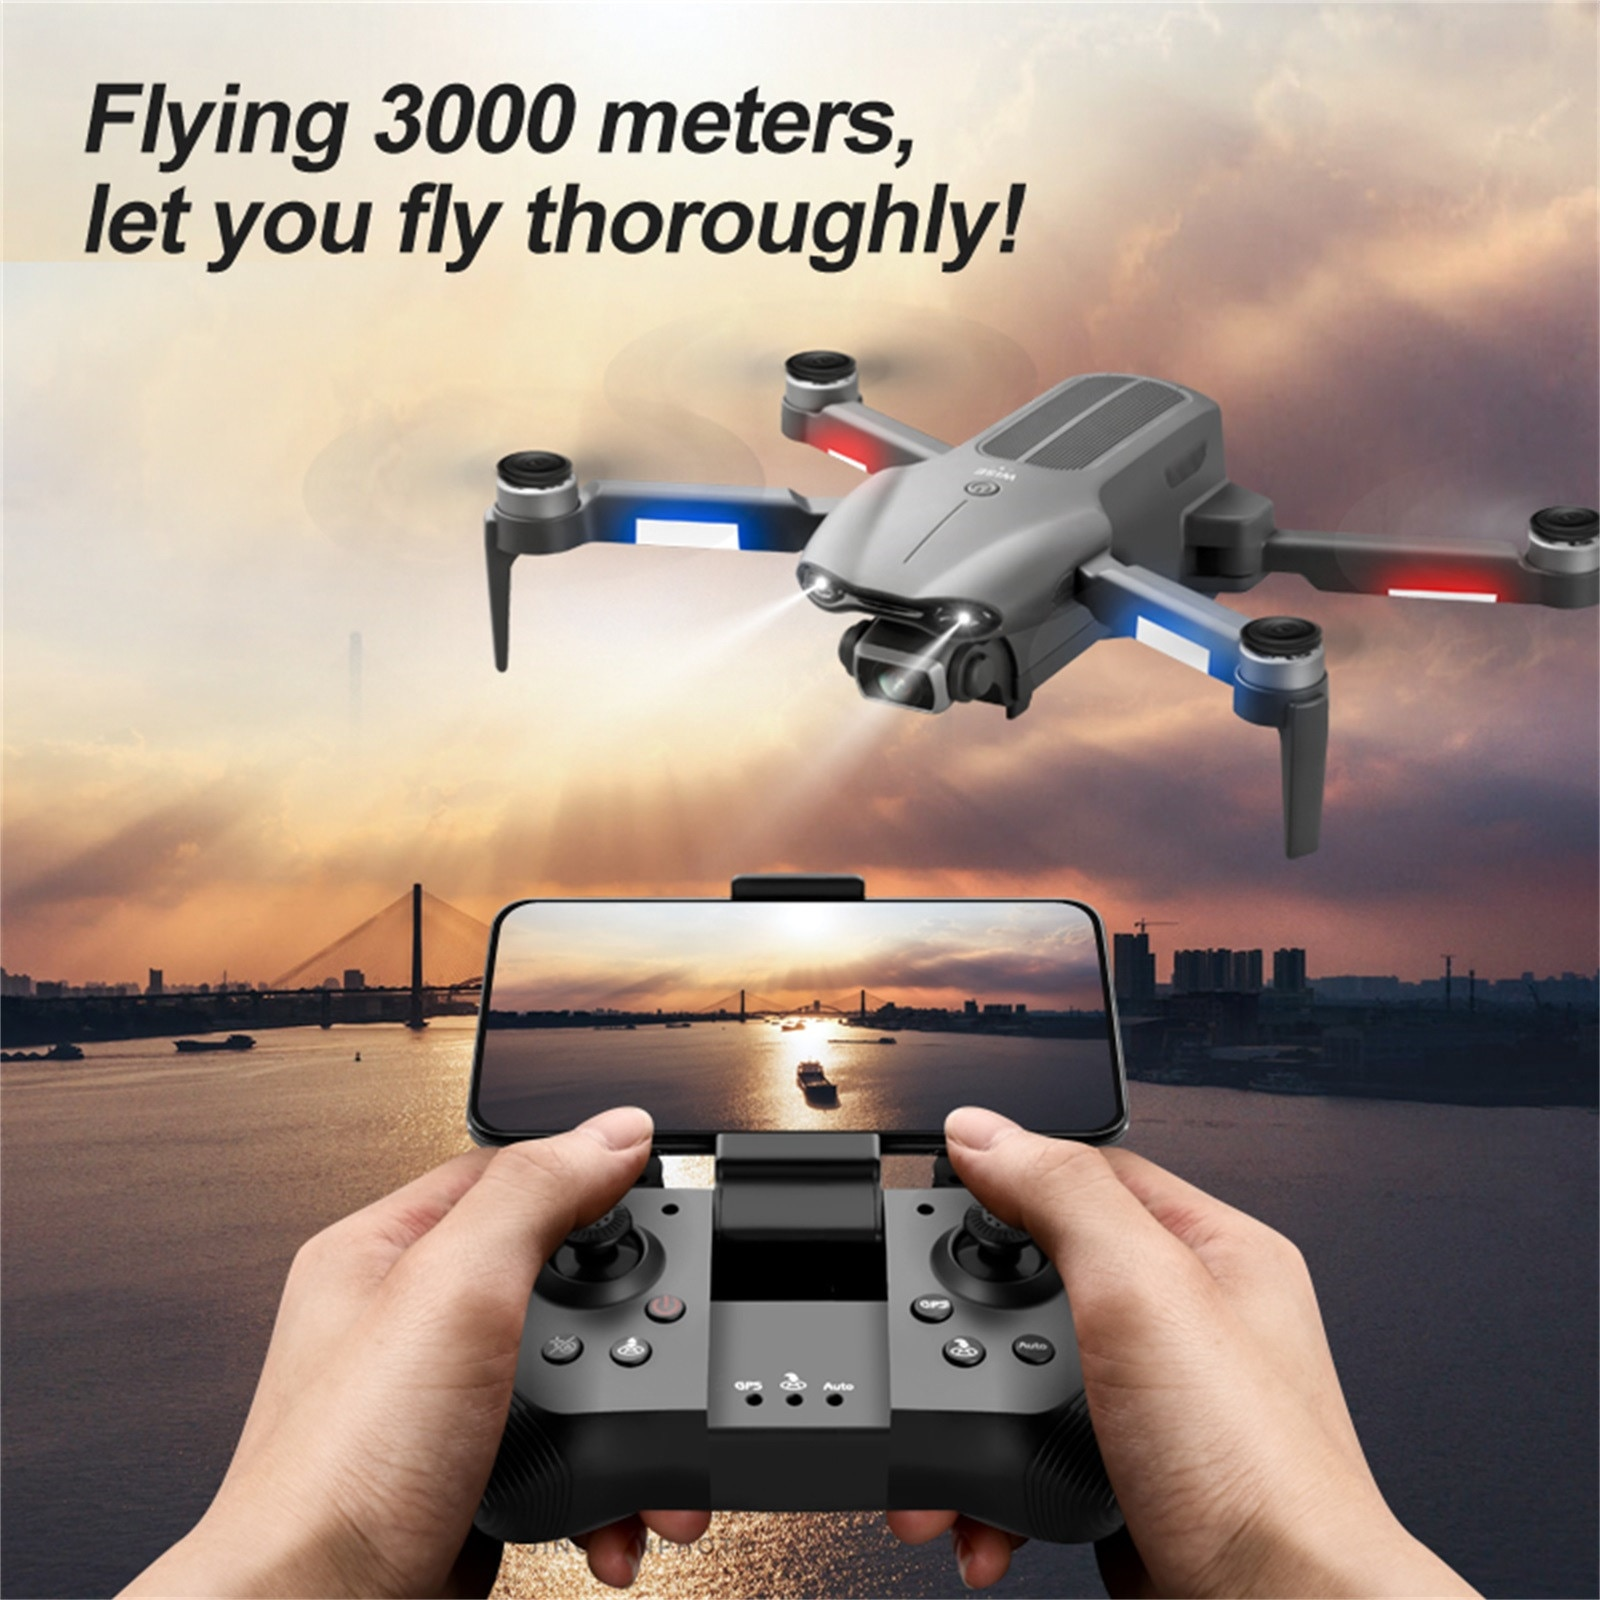 F9 GPS Drone 6K Camera Dual HD Professional Aerial Photography Brushless Foldable RC Quadcopter Remote Distance 3000M Dron enlarge